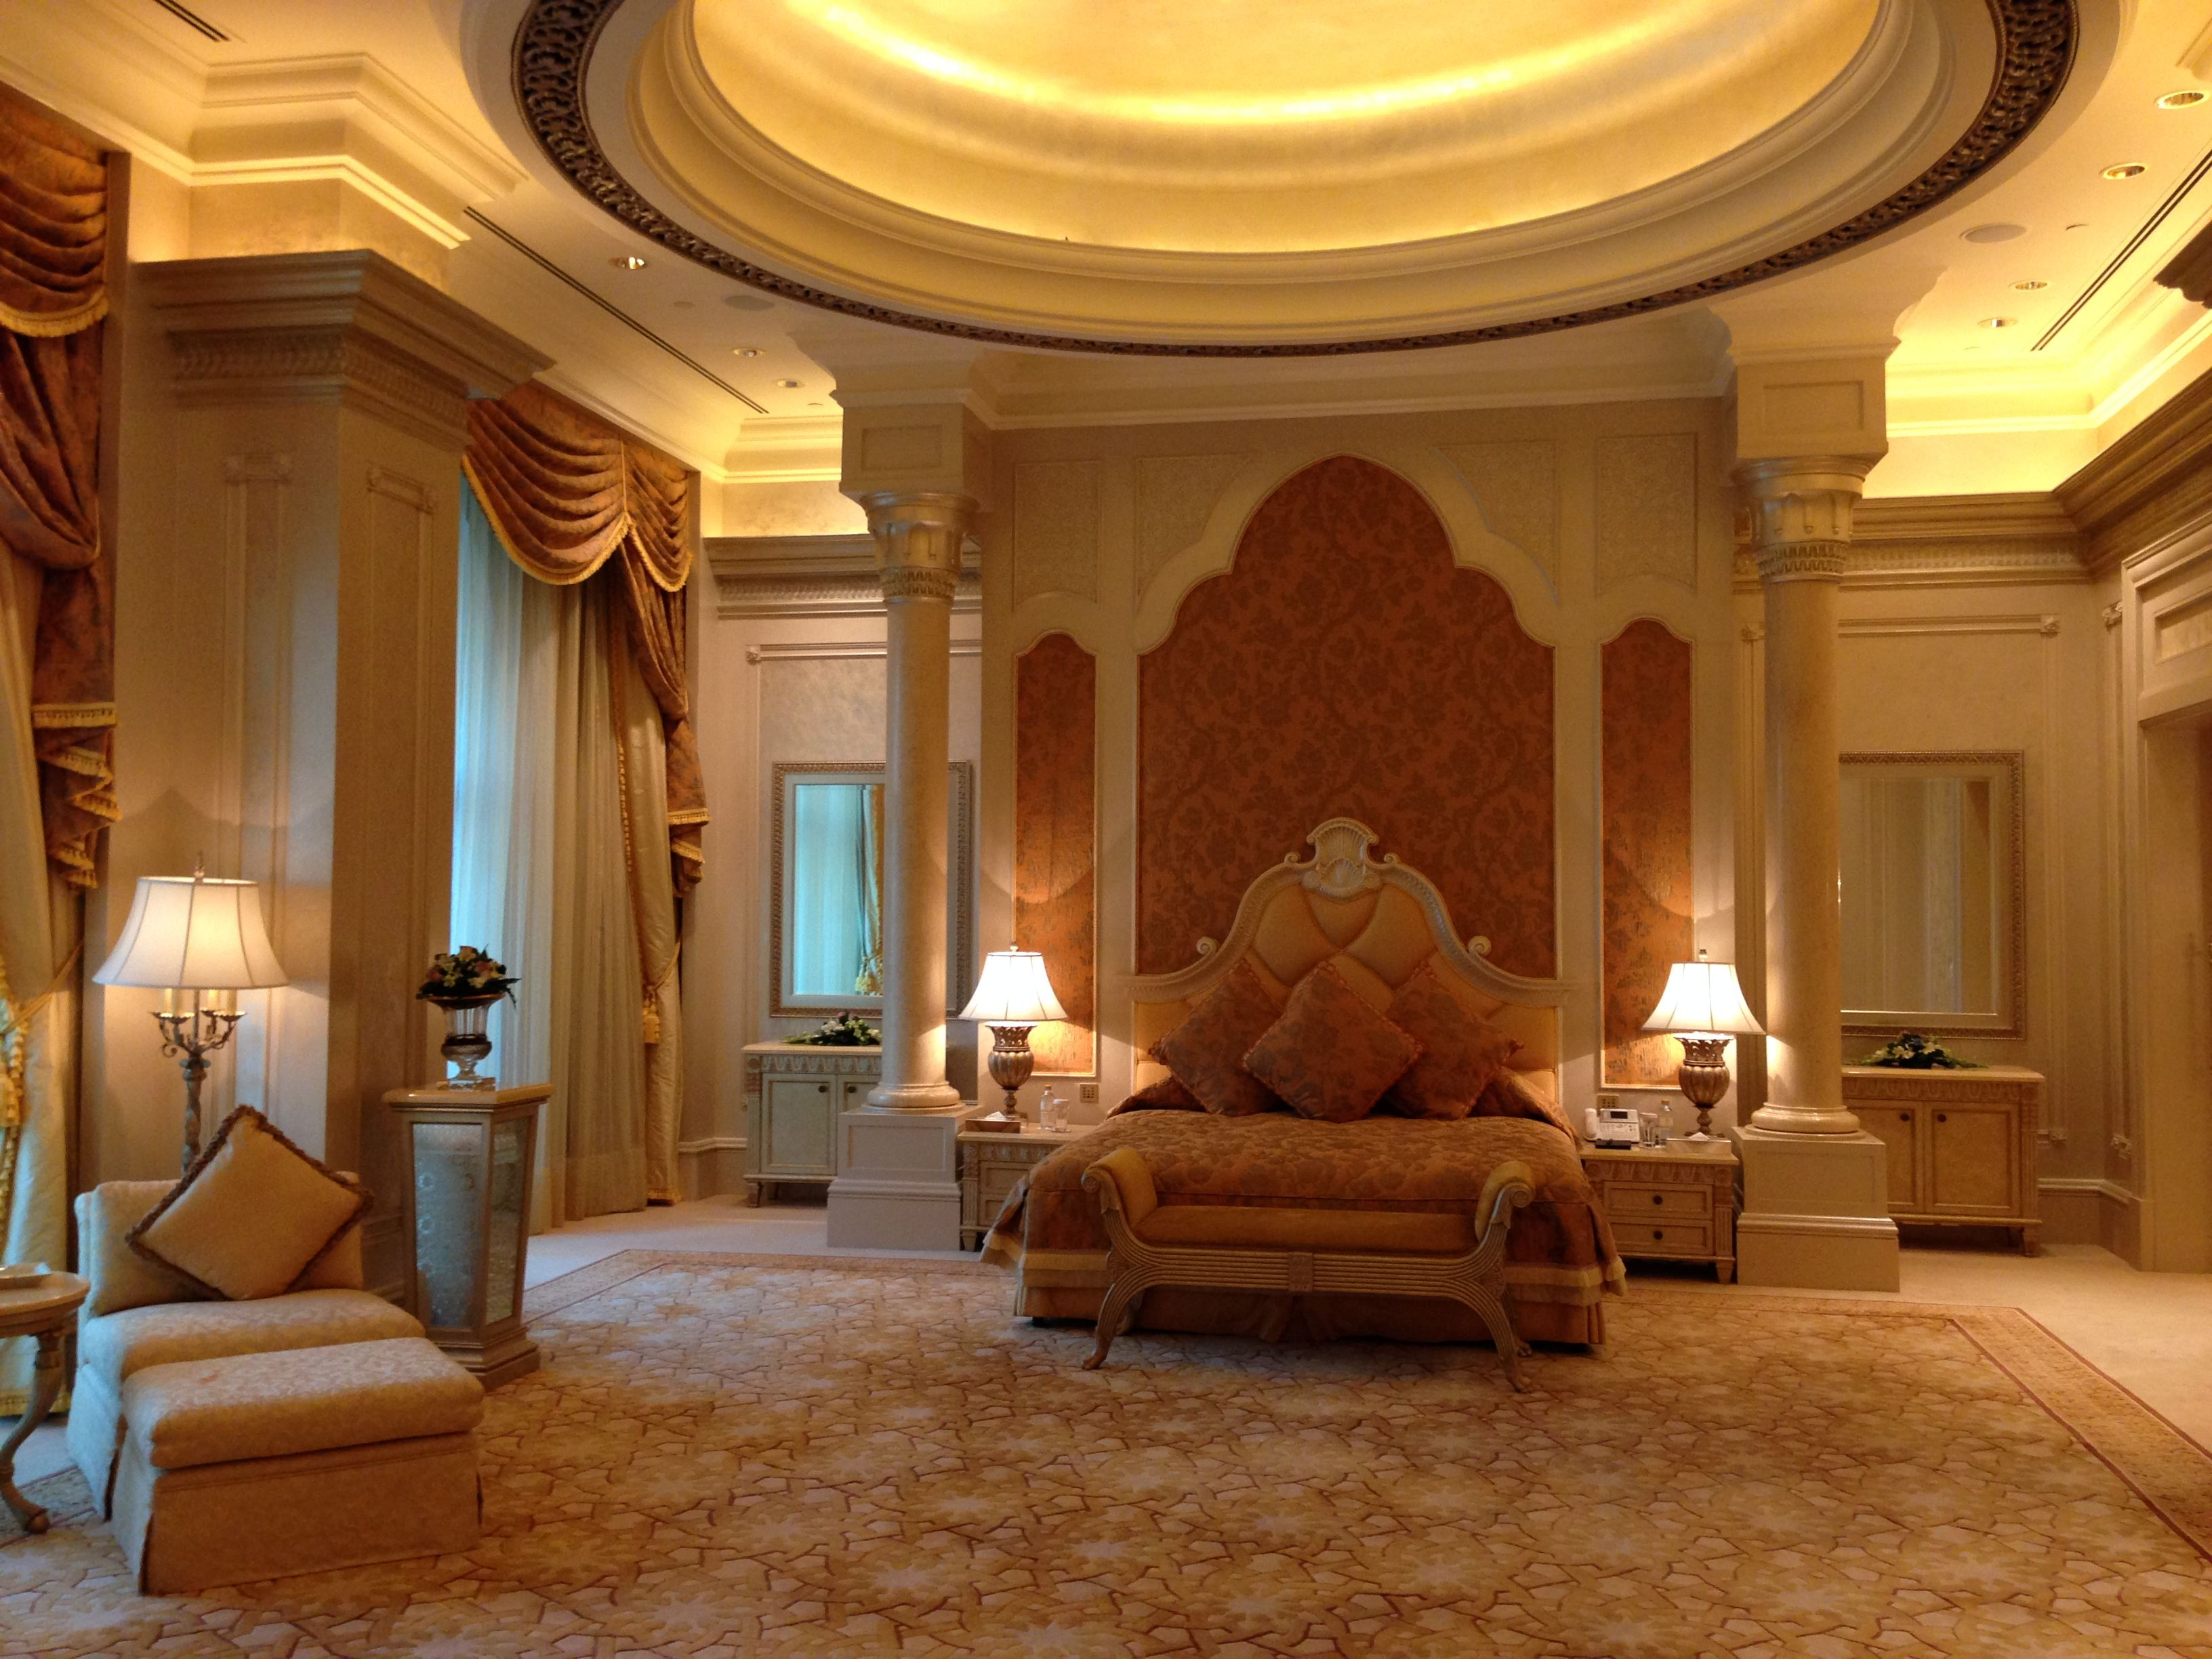 Palace Bedroom download